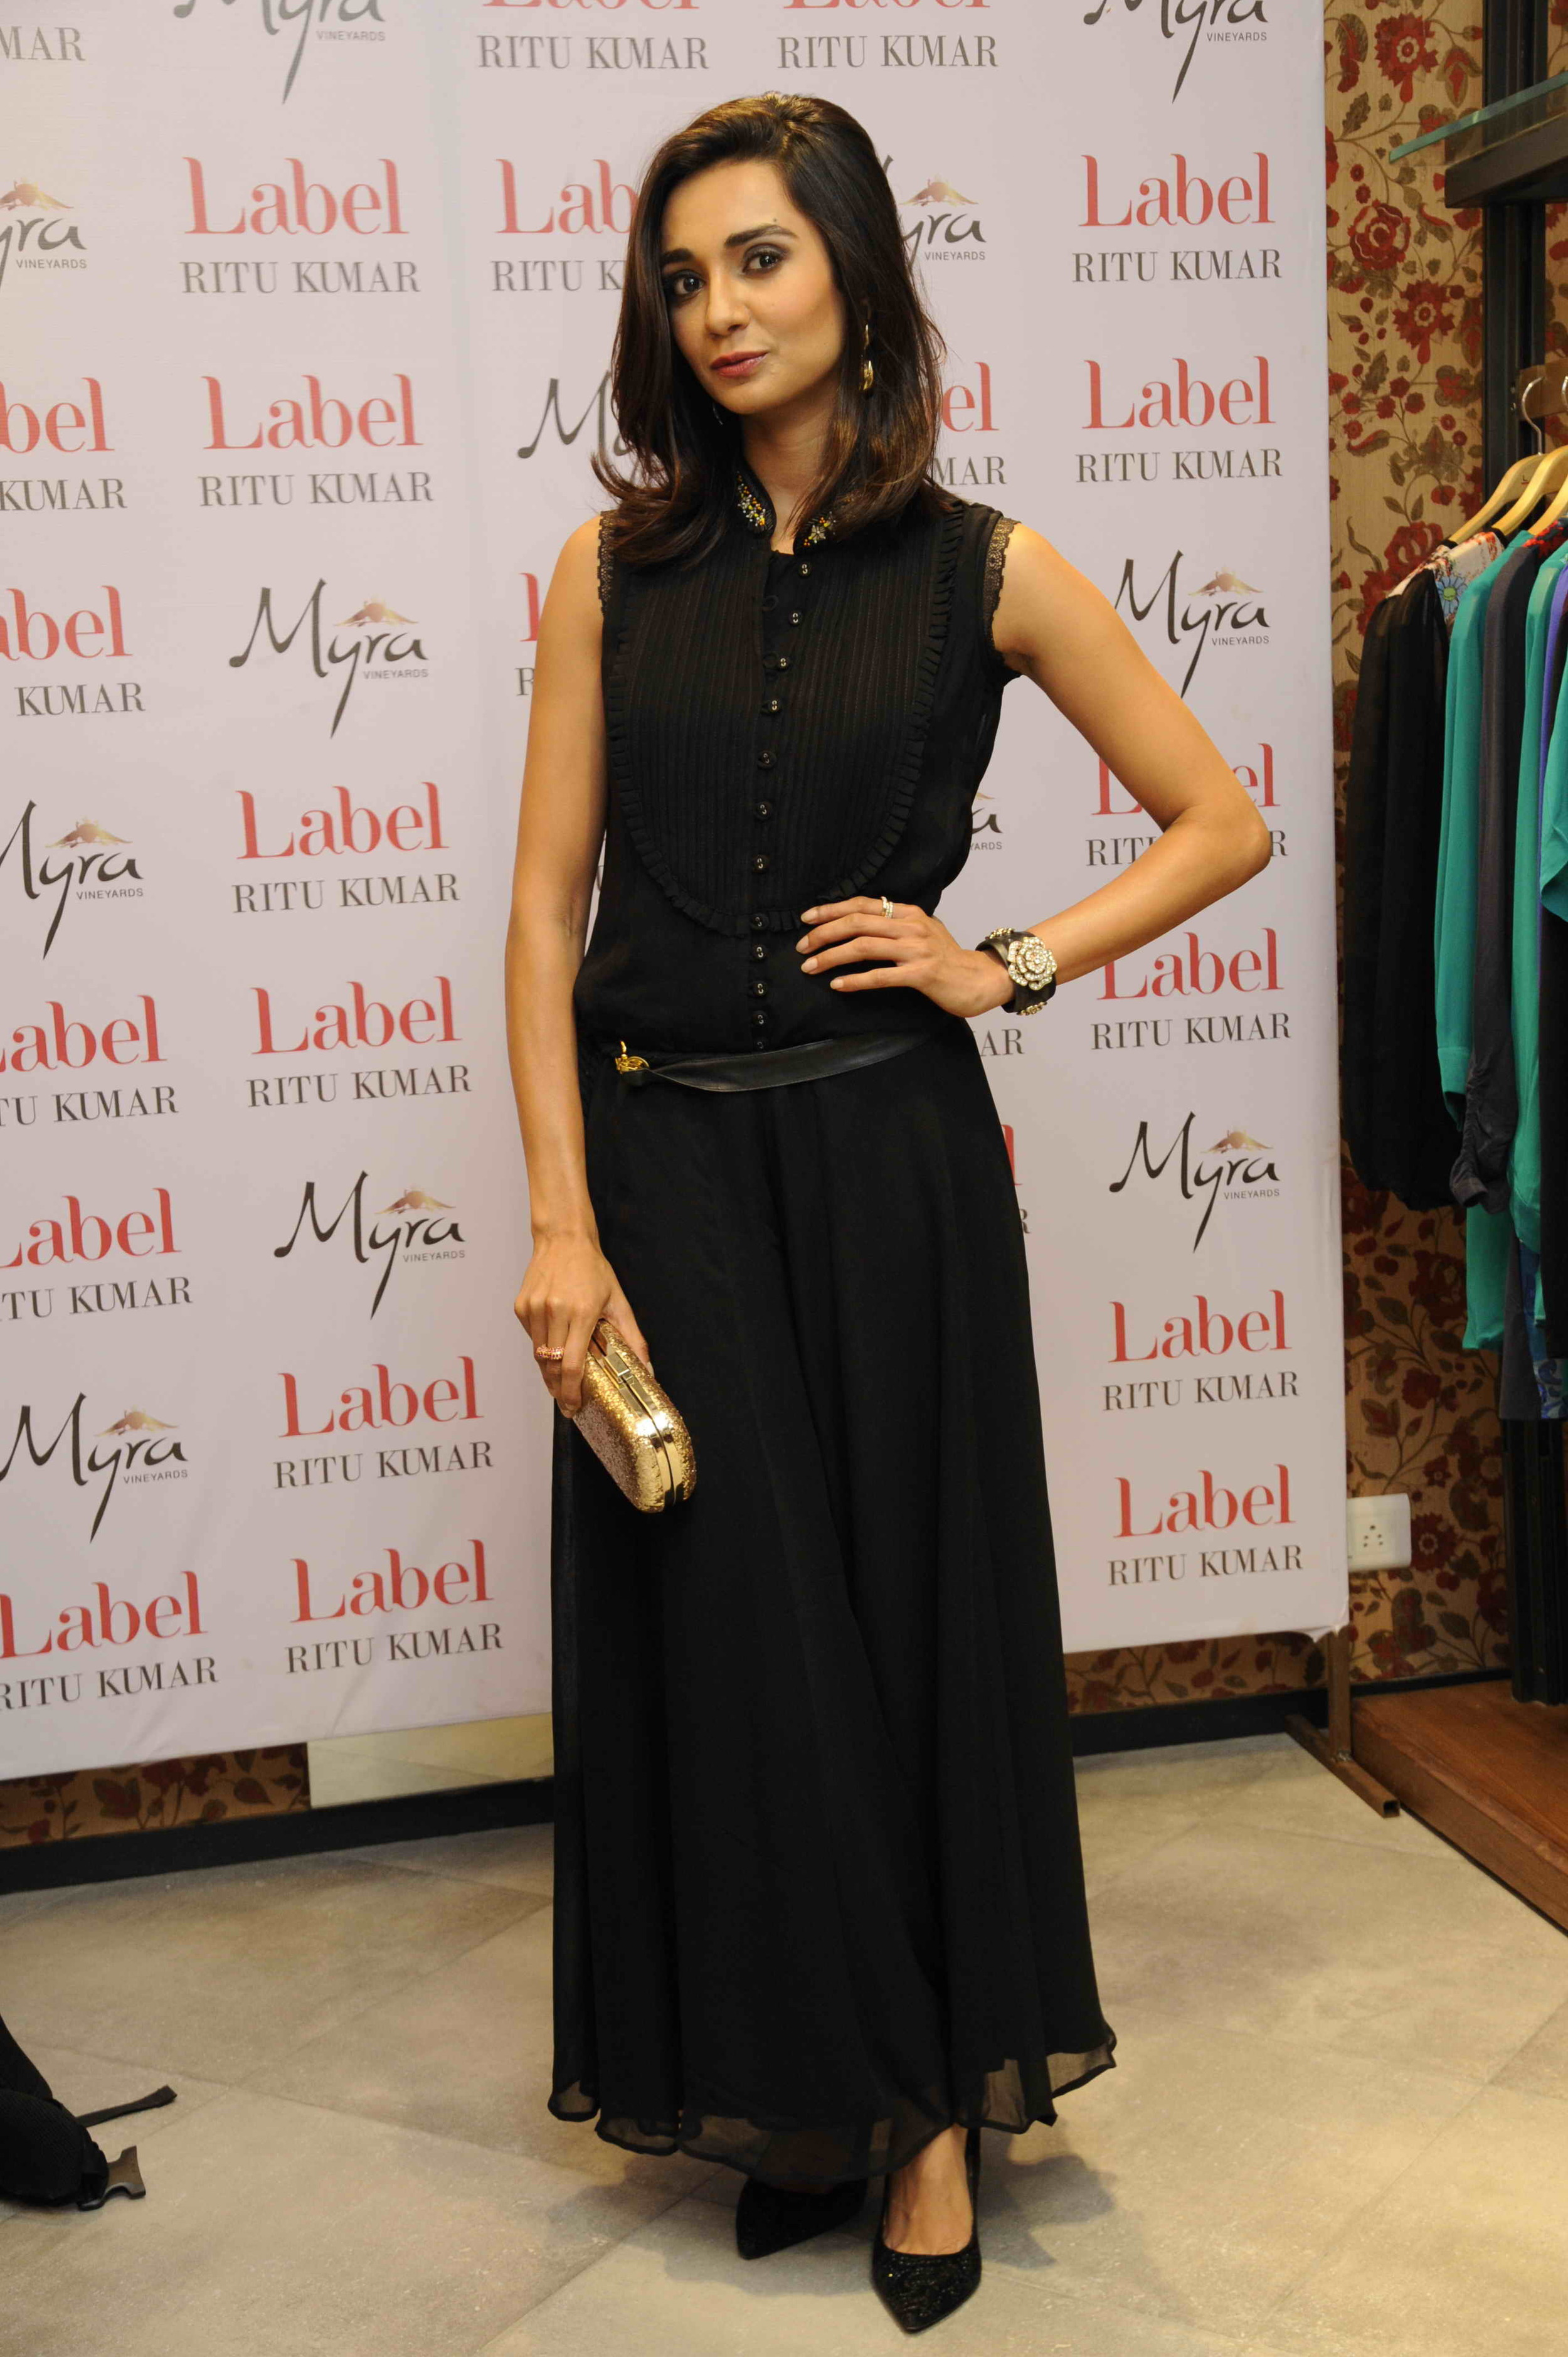 label-ritu-kumar-palladium-launch-21.jpg